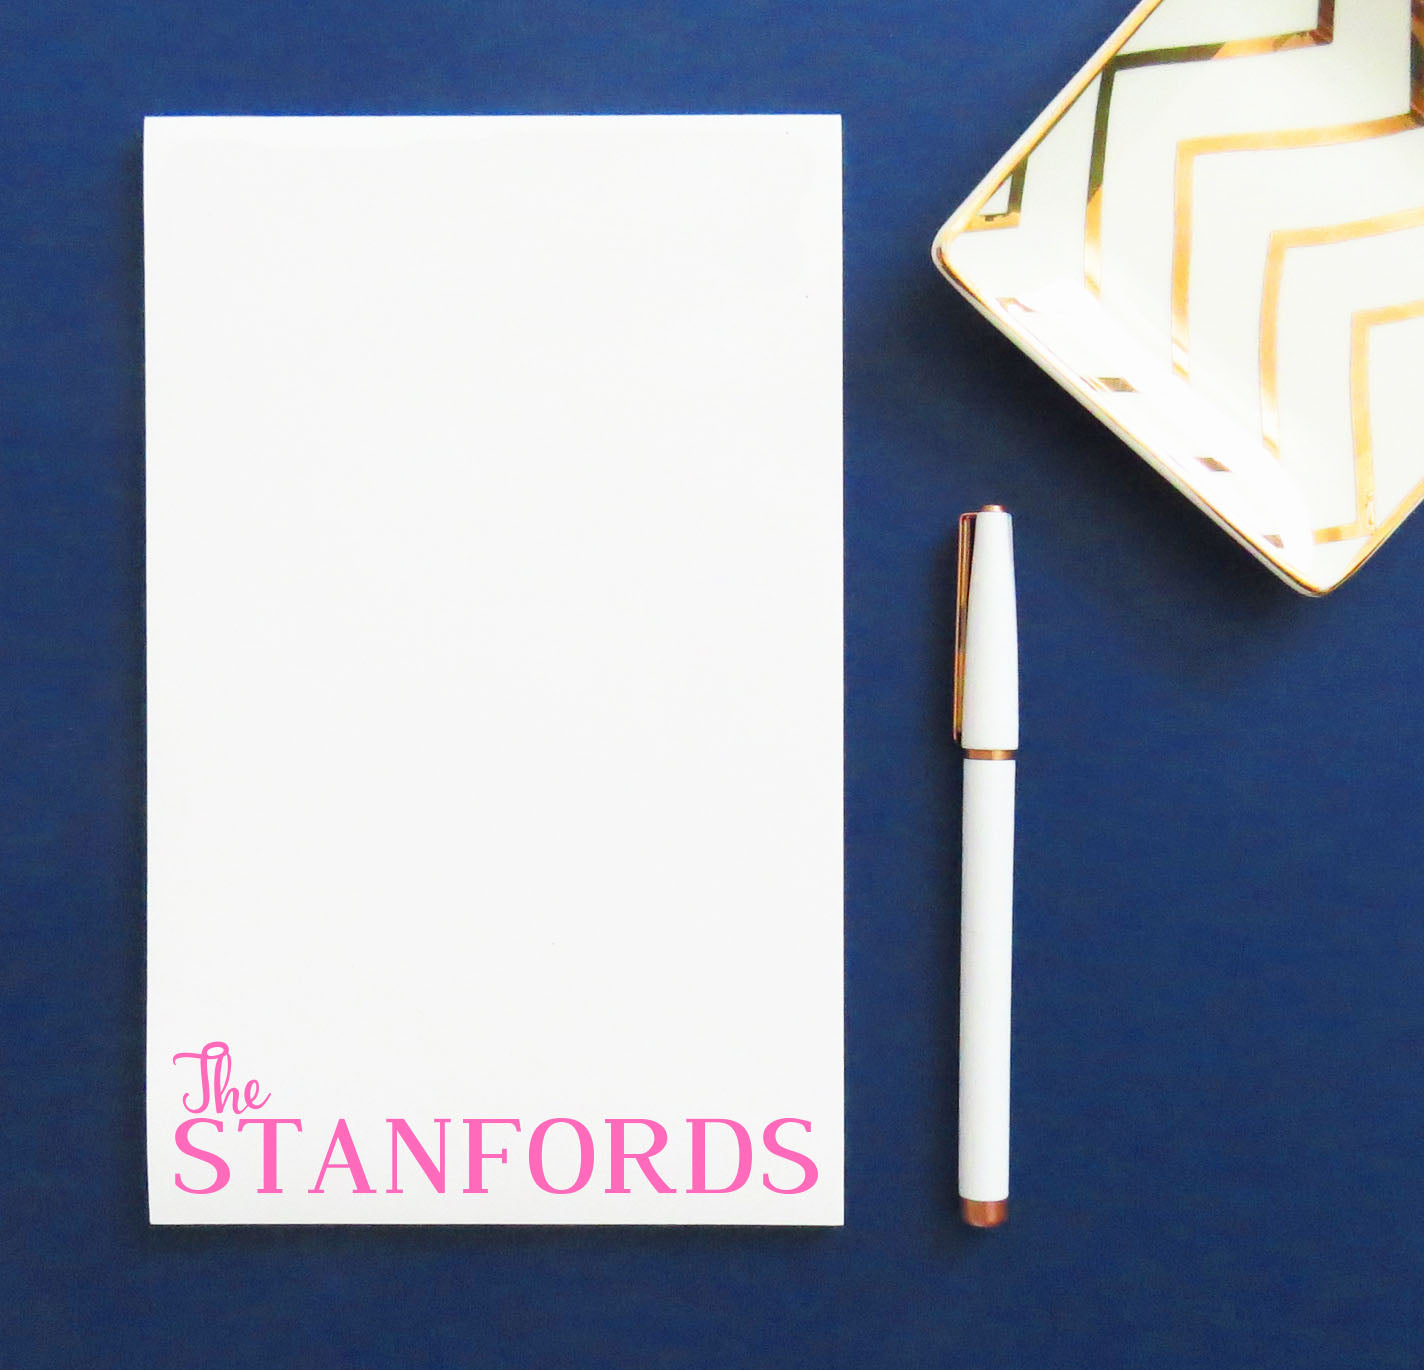 NP003 lastname family personalized note pad block font paper